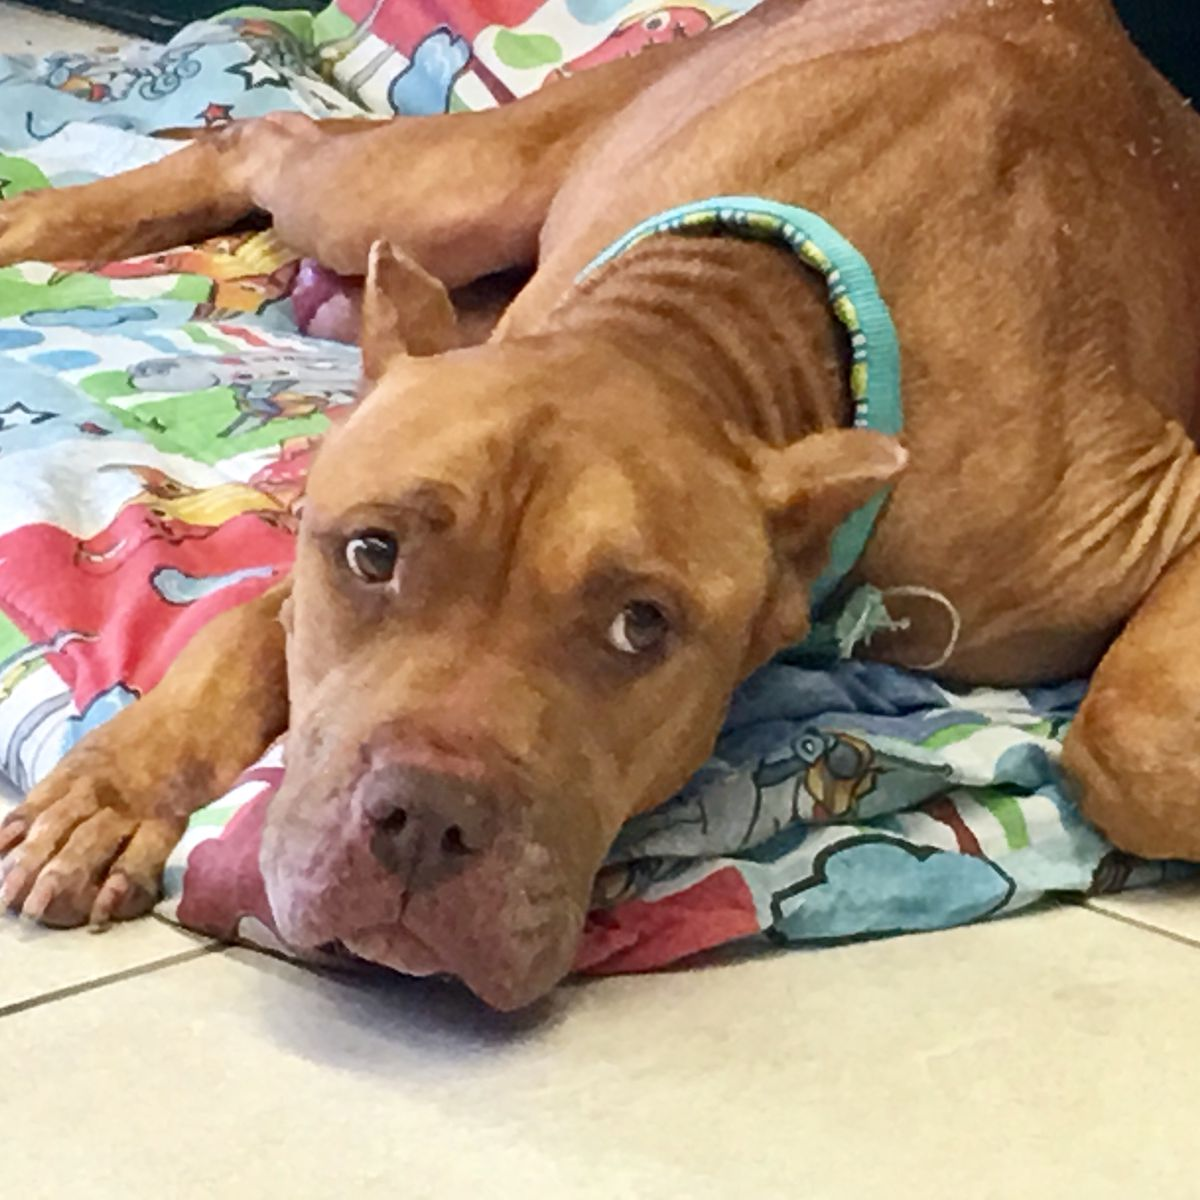 Dogs dropped off at Montgomery shelter with critical injuries recovering